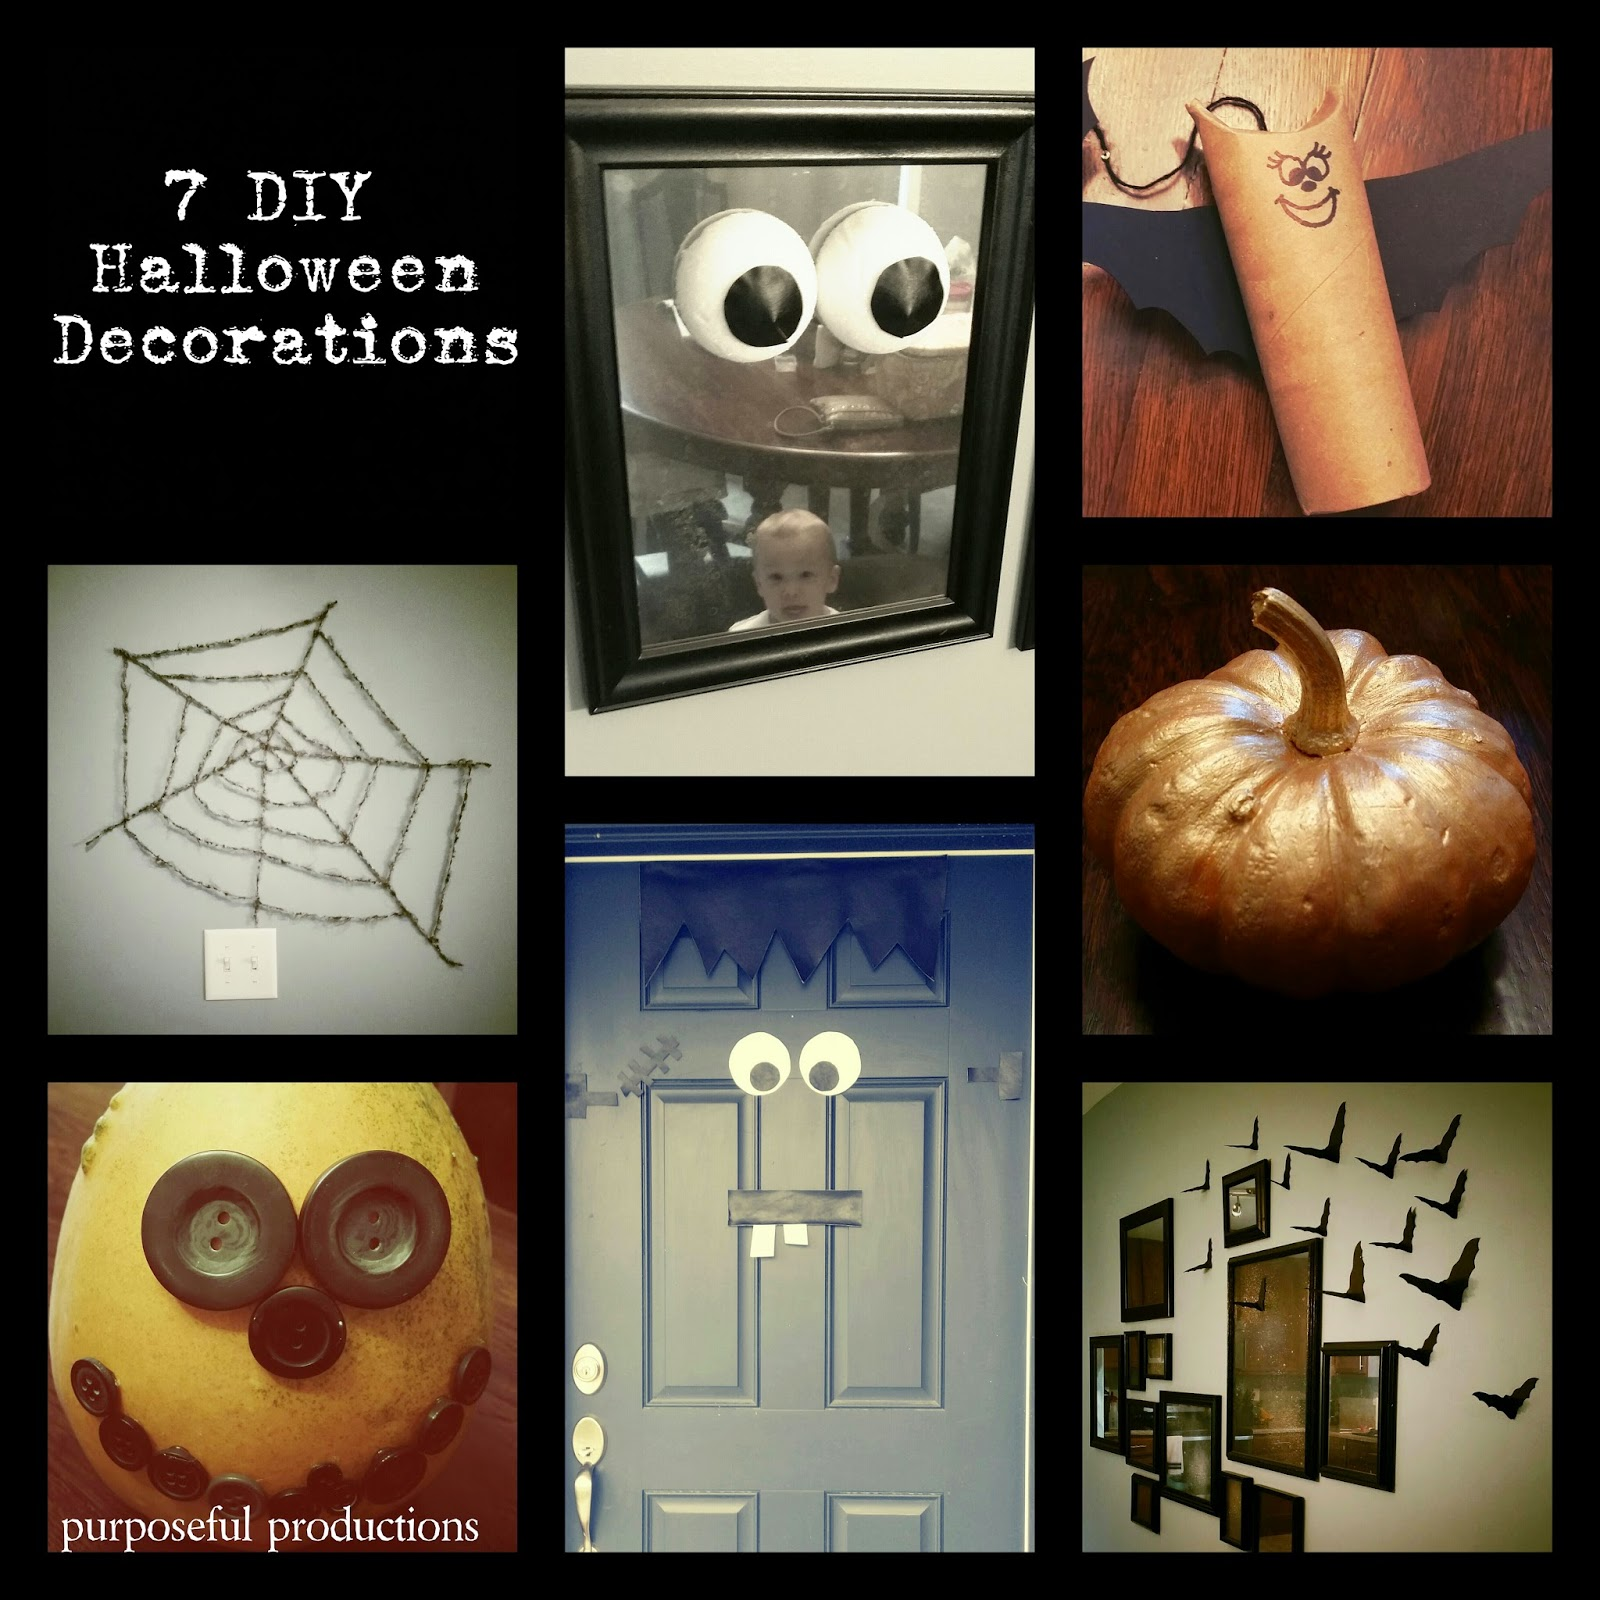 Purposeful Productions: 7 DIY Halloween Decorations